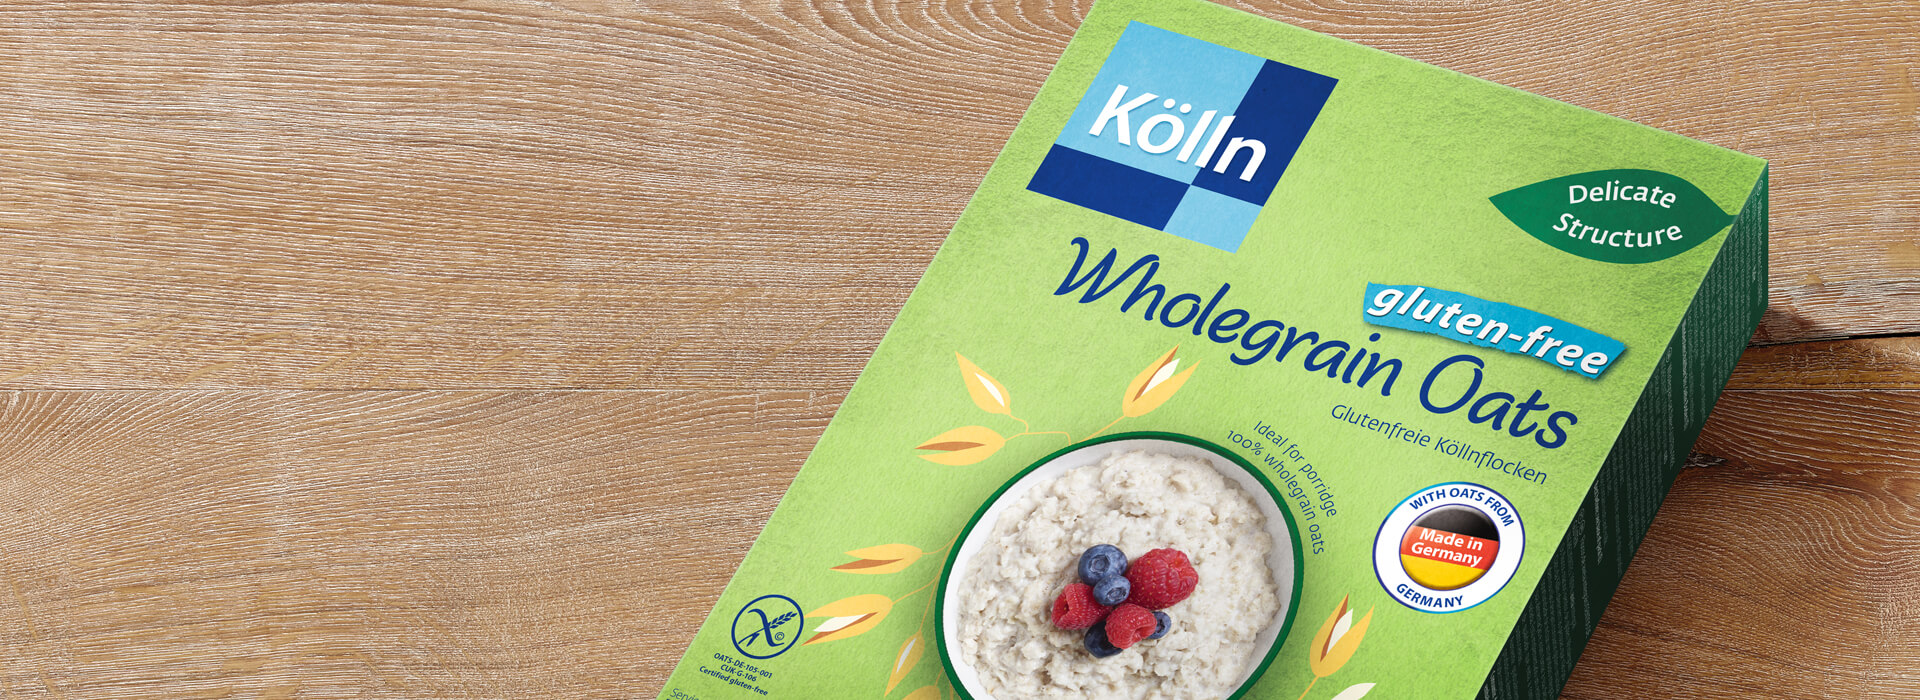 Koelln Wholegrain Oats gluten-free Pack on Table